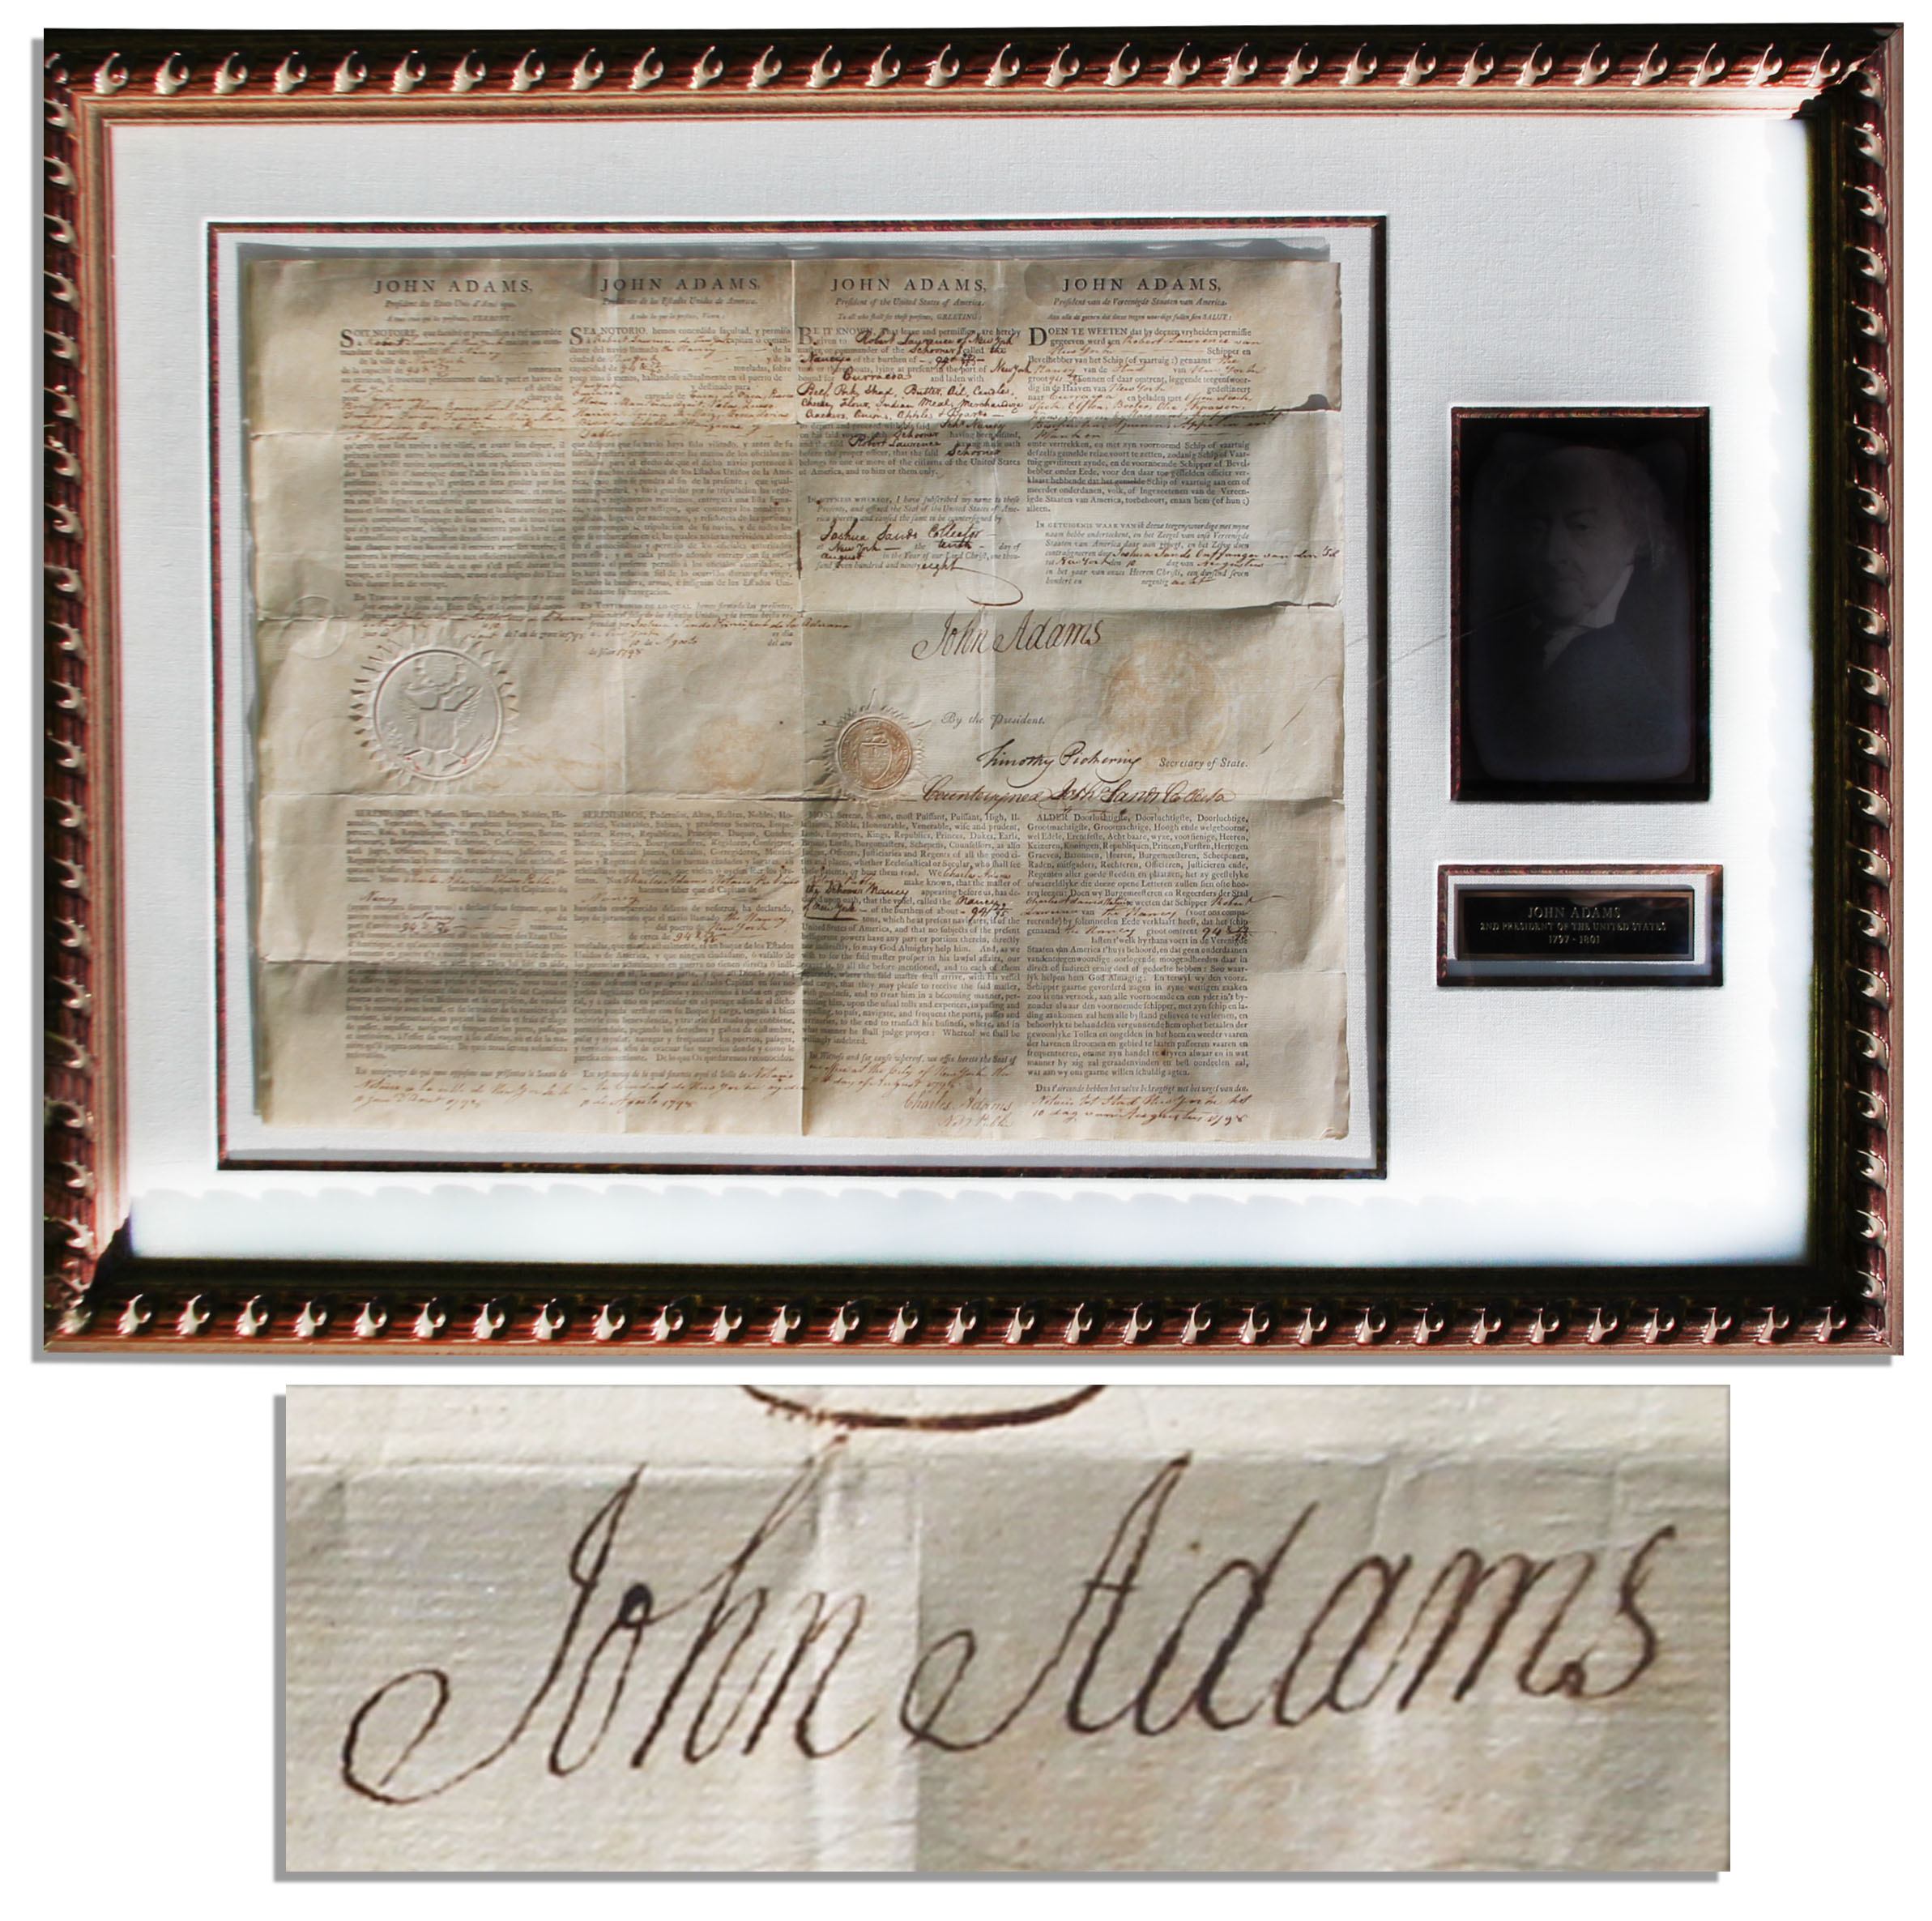 john adams and zachary taylor essay Business and politics separated john adams from his wife and family for much of the time when adams was a young lawyer, his travels to distant villages on the court circuit kept him away even when he was at home, abigail scolded him for staying out late at night while attending various meetings.